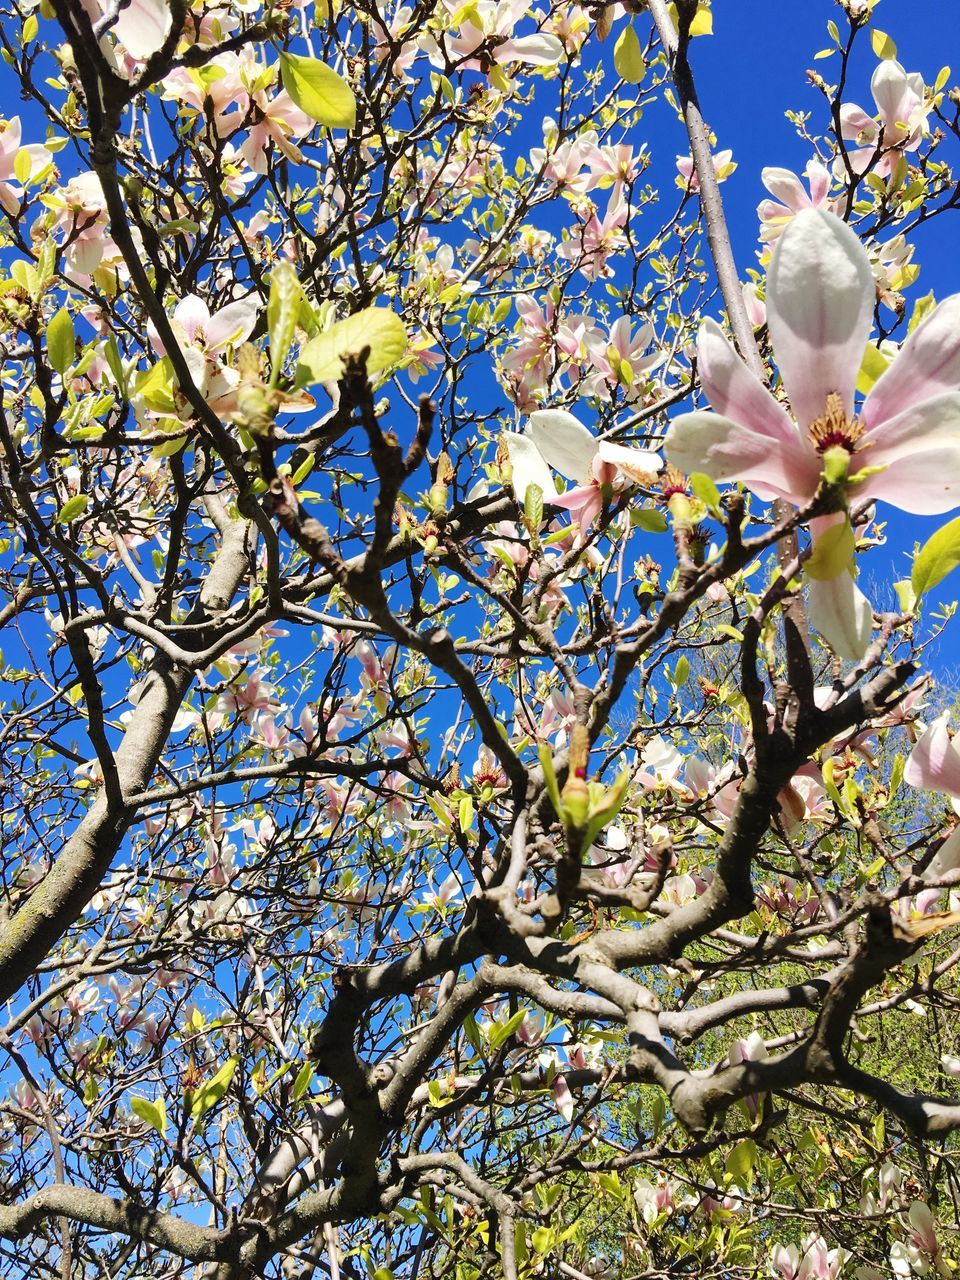 flower, tree, growth, branch, beauty in nature, nature, fragility, petal, blossom, freshness, magnolia, springtime, no people, day, botany, low angle view, twig, outdoors, flower head, blooming, close-up